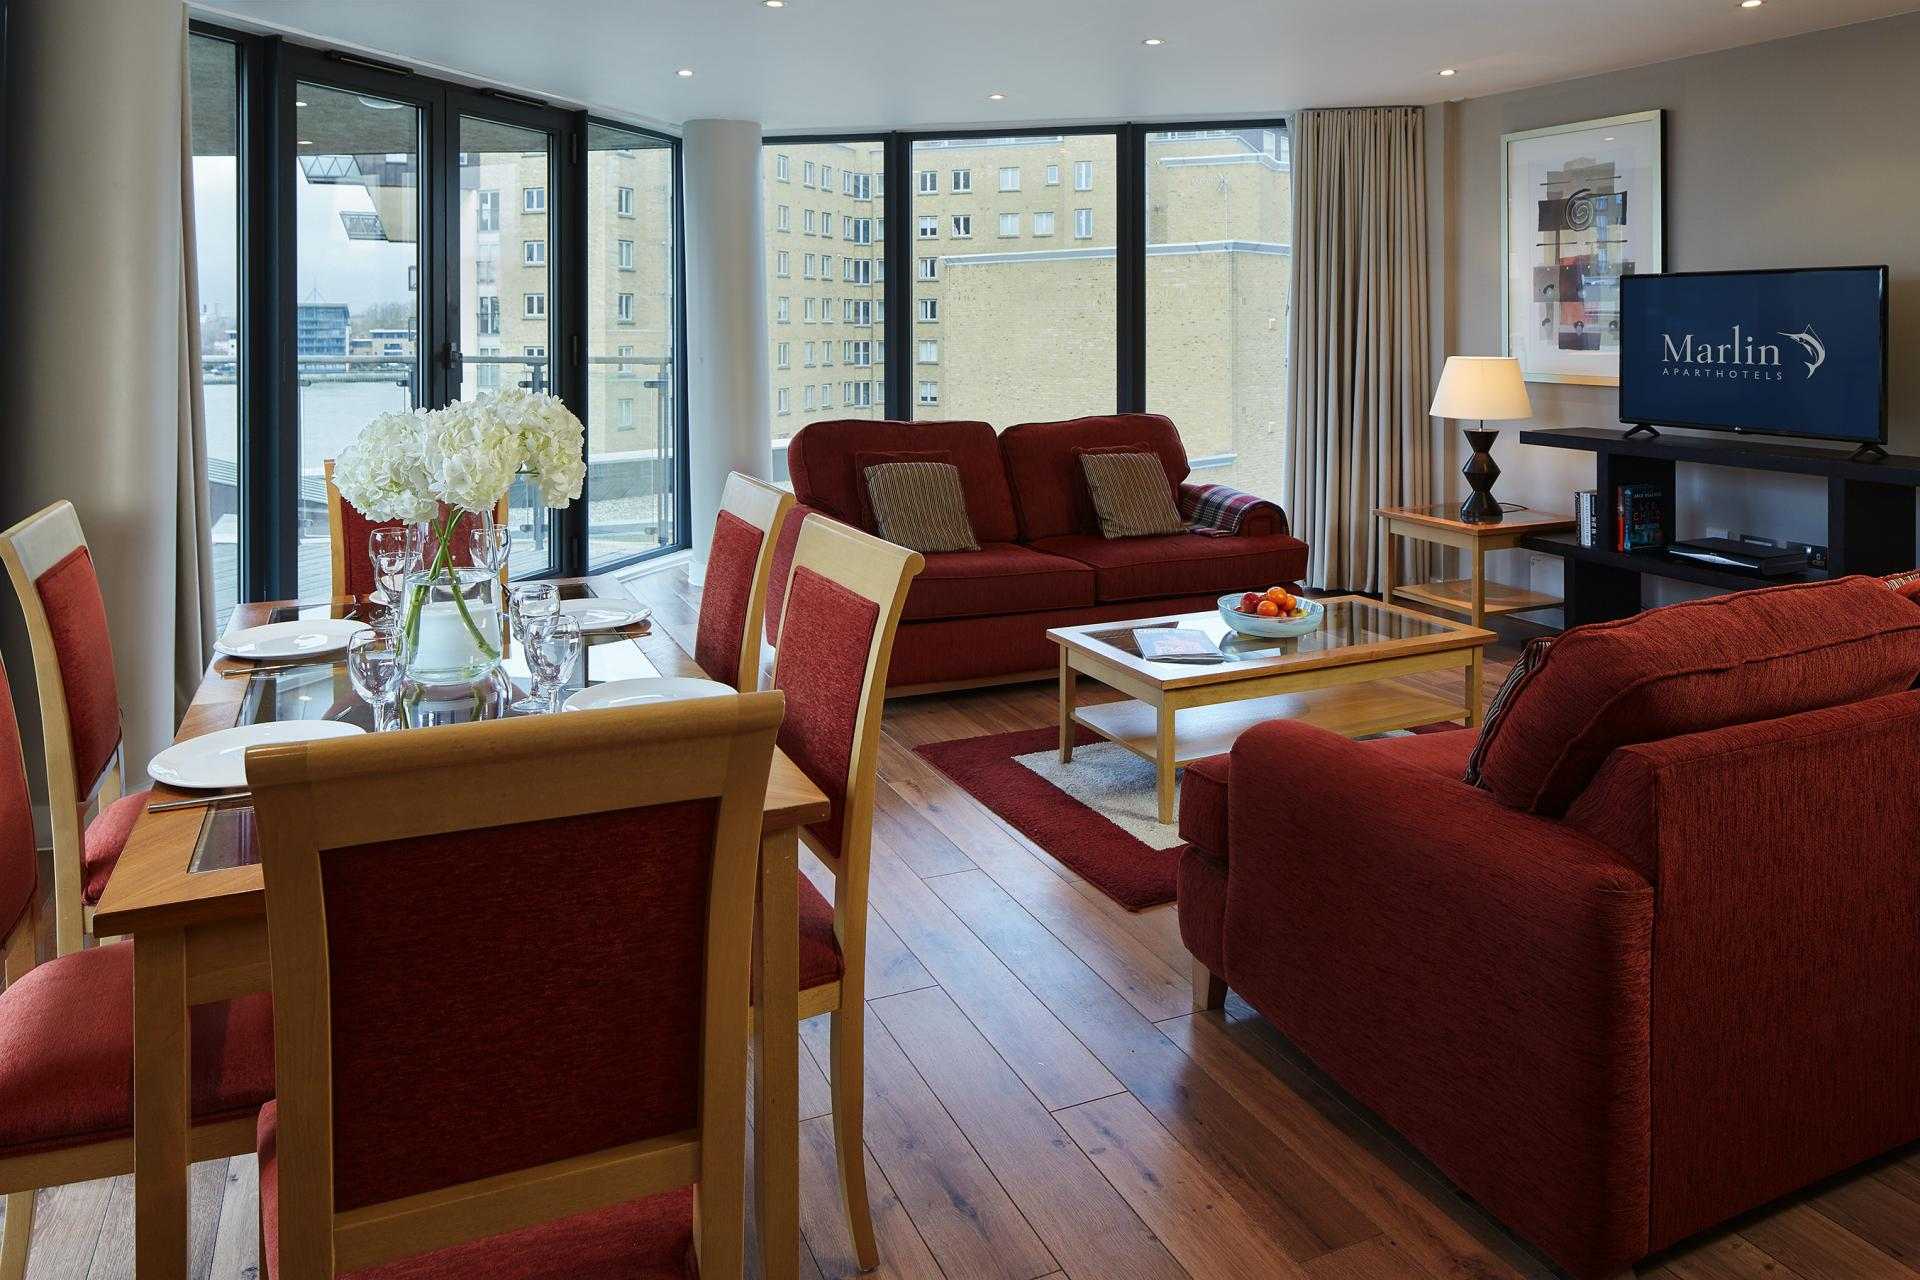 Sofas at Marlin Canary Wharf Apartments, Canary Wharf, London - Citybase Apartments